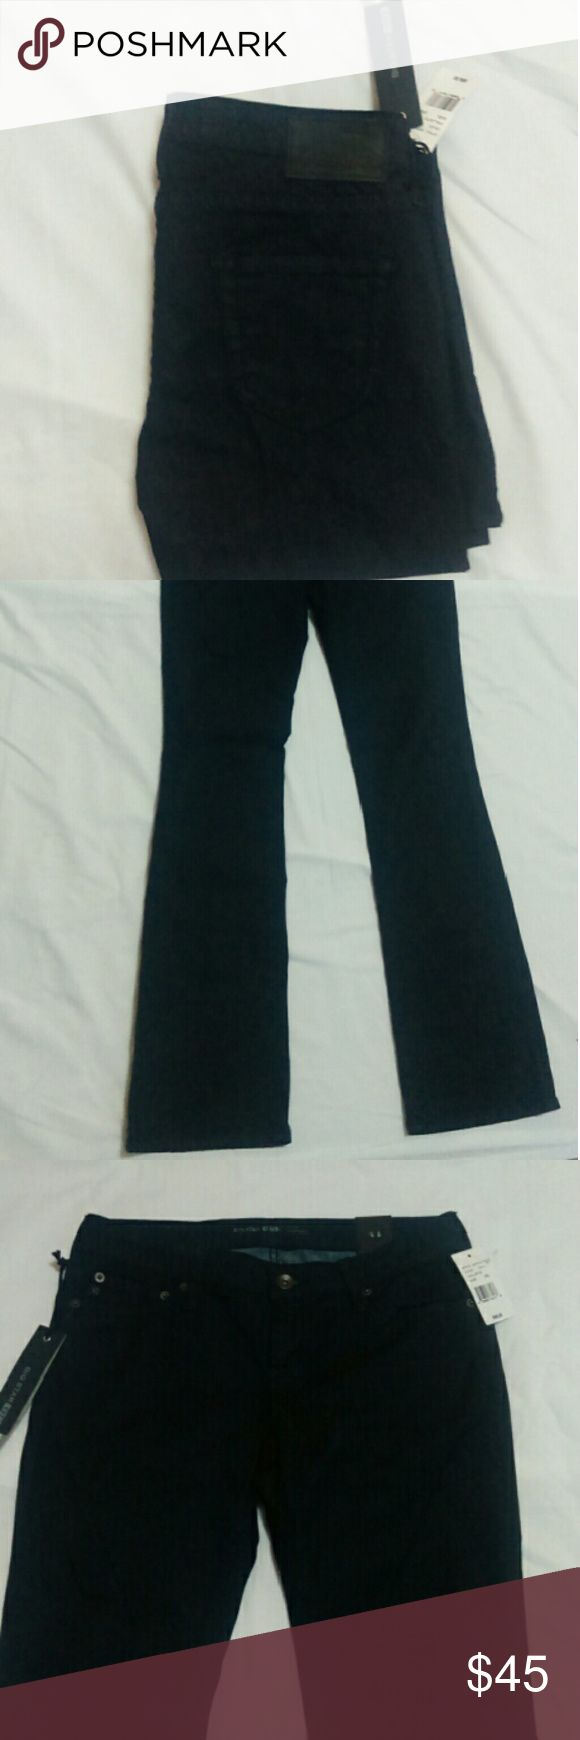 ⏰FLASH SALE Big Star Pride low rise boot 28L Very dark blue jeans, Callisto. Big Star Jeans